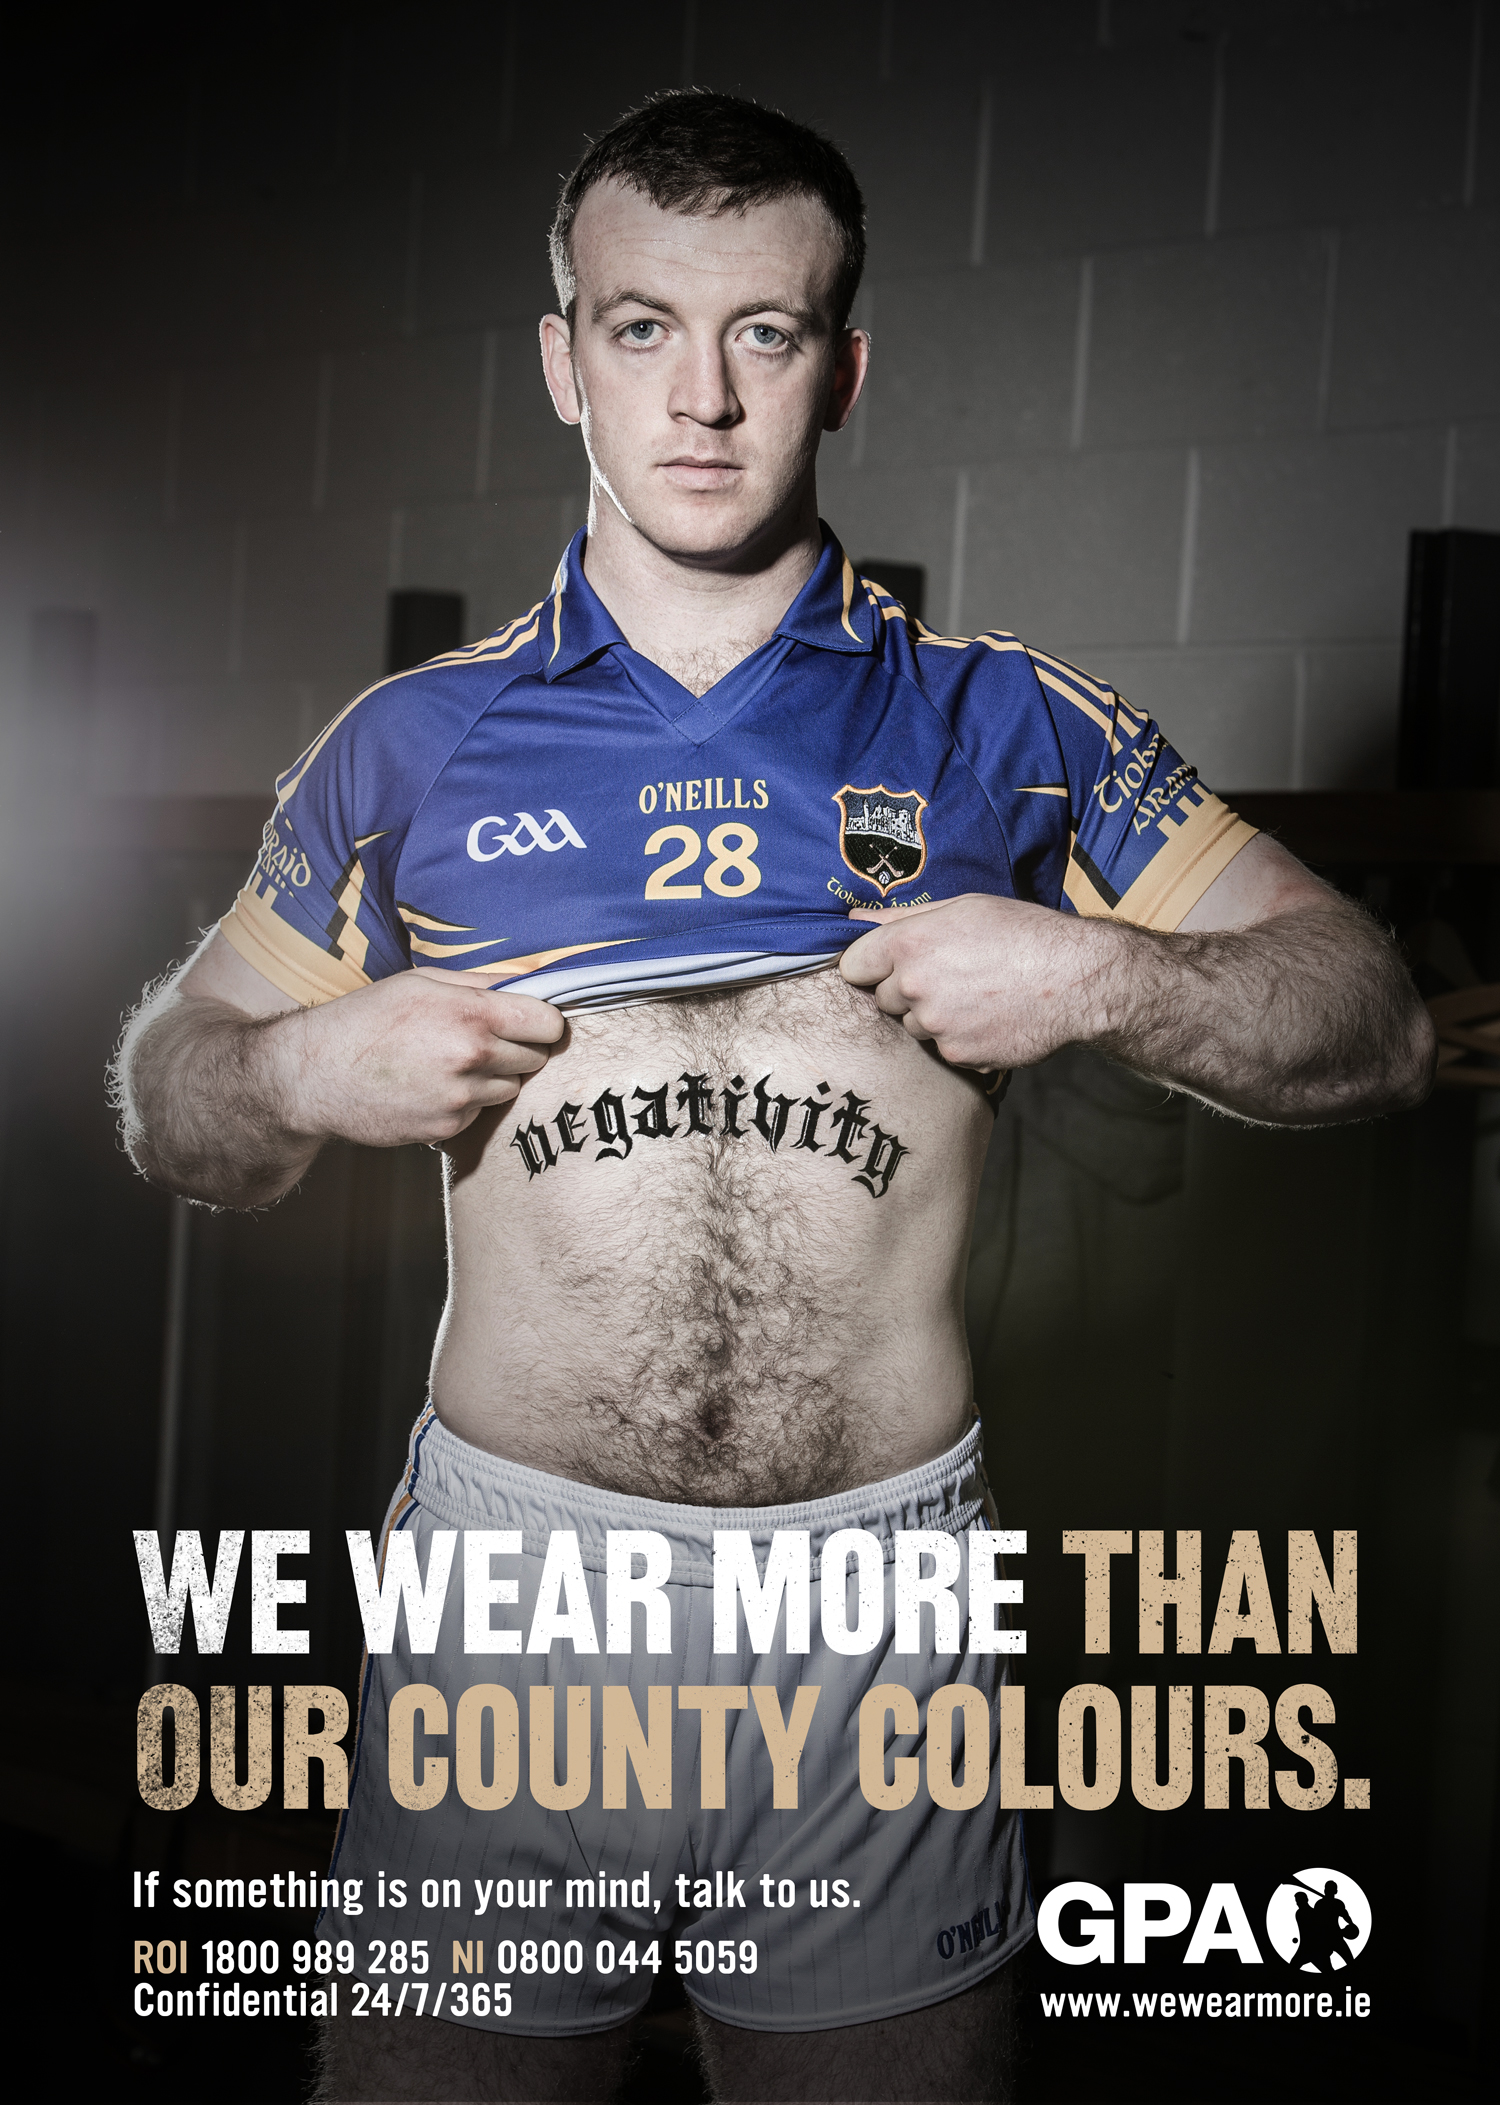 GPA_Poster_AW_Tipperary.jpg